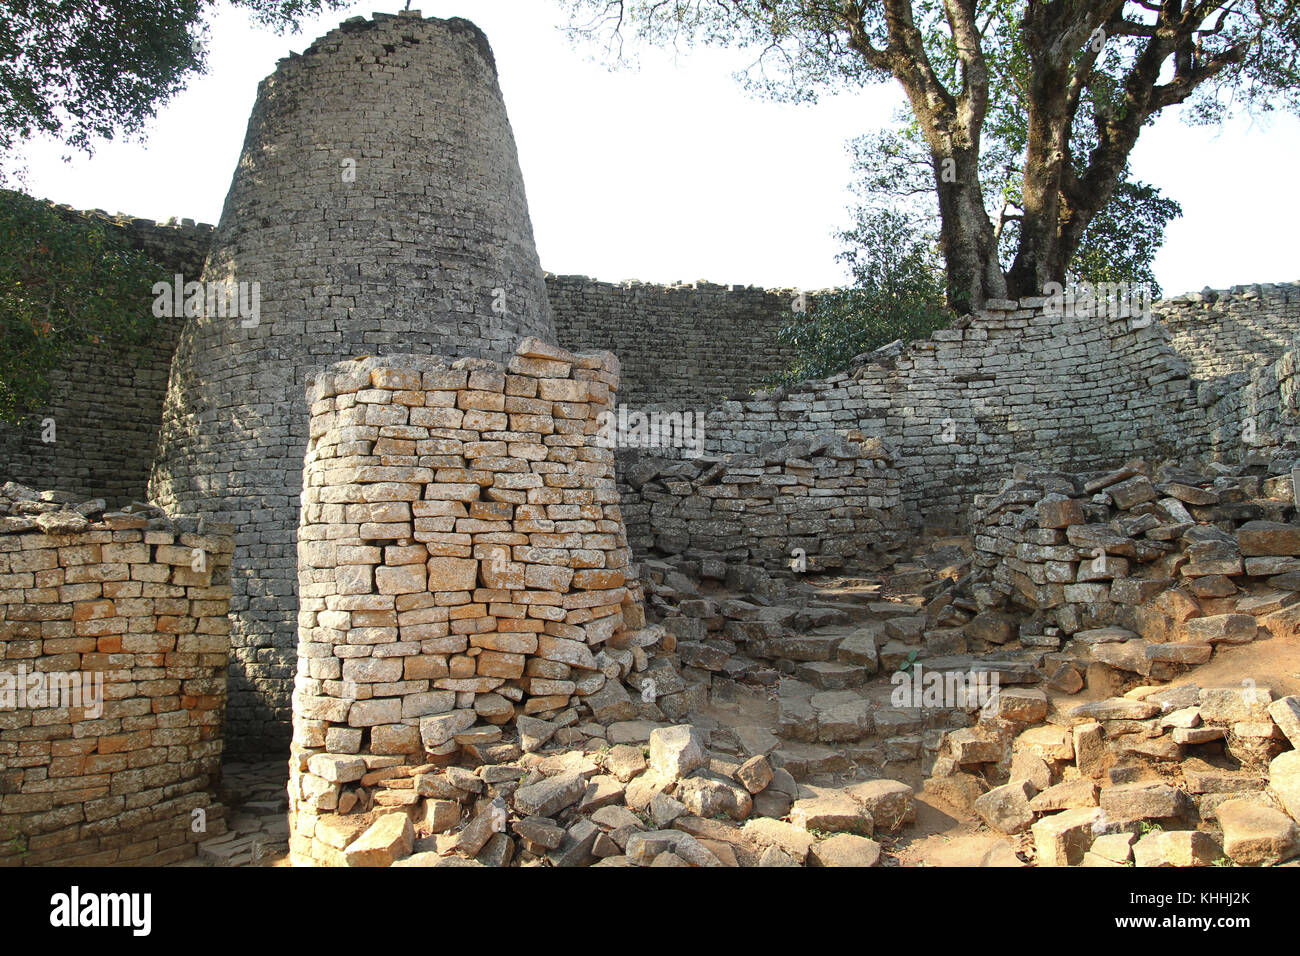 GREAT ZIMBAWE, ZIMBABWE -  16 October 2011:. The Great Zimbabwe tower that is located in the Great Enclosure. This - Stock Image